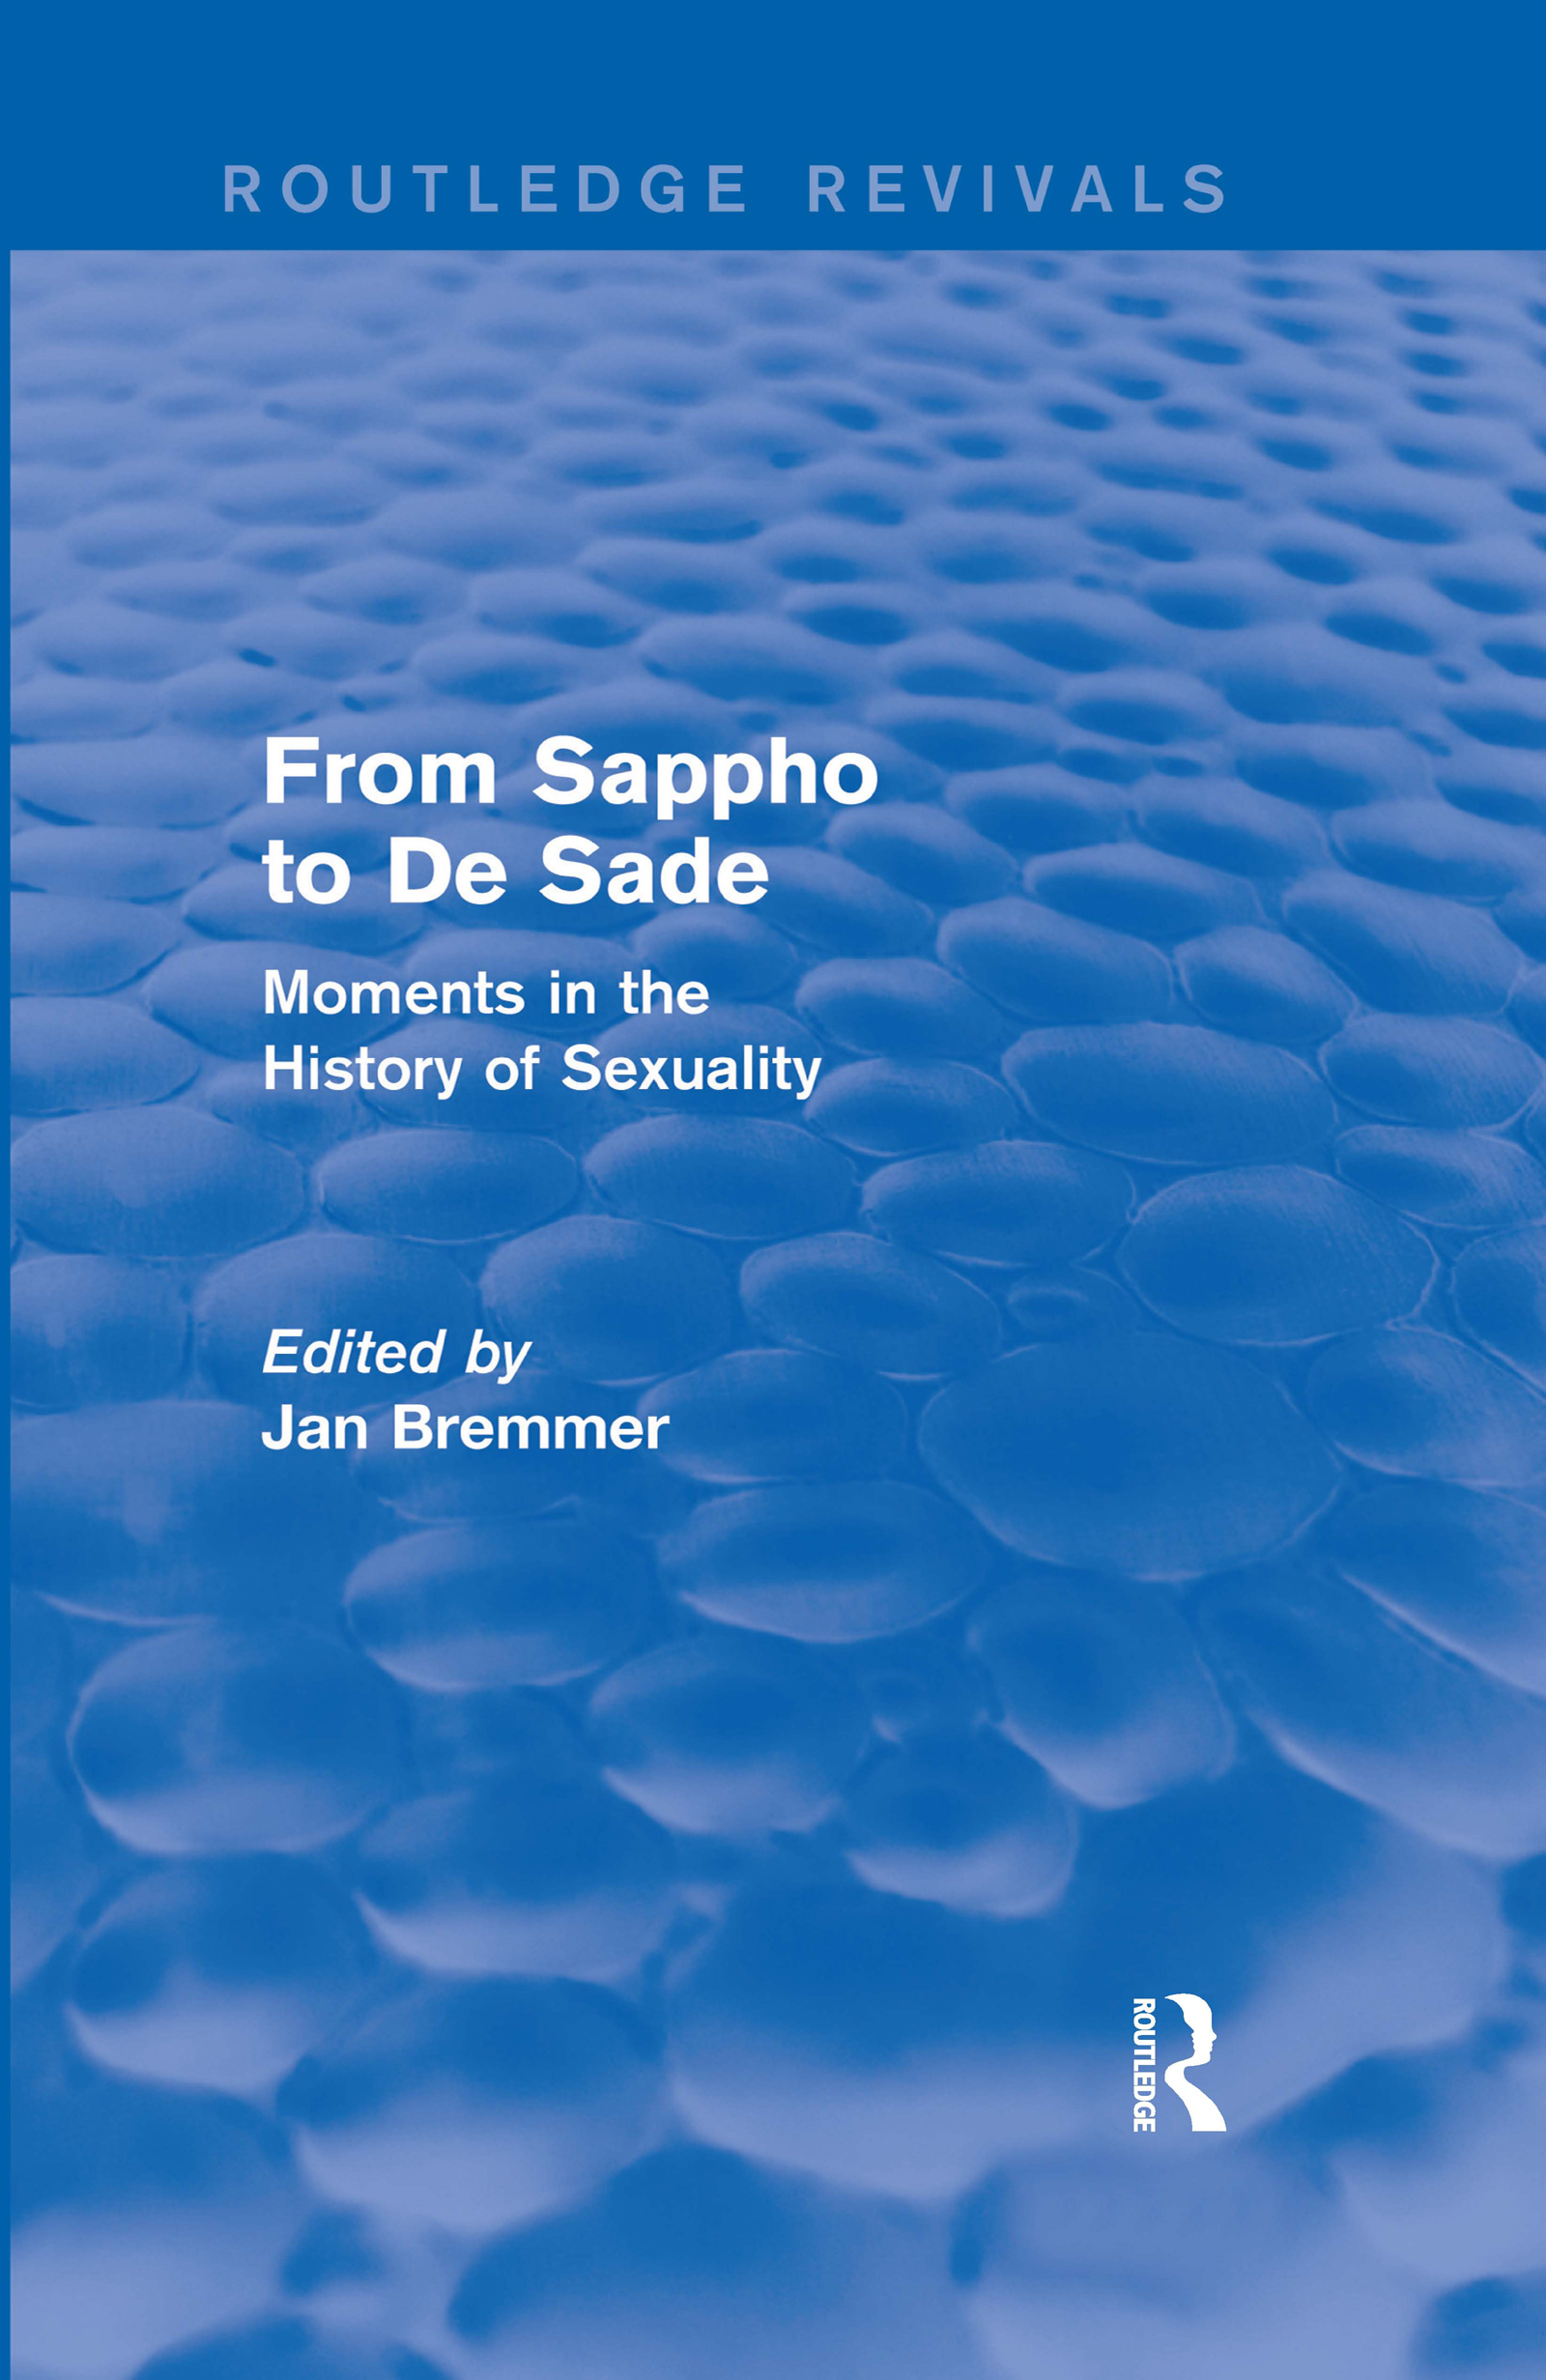 From Sappho to De Sade (Routledge Revivals)